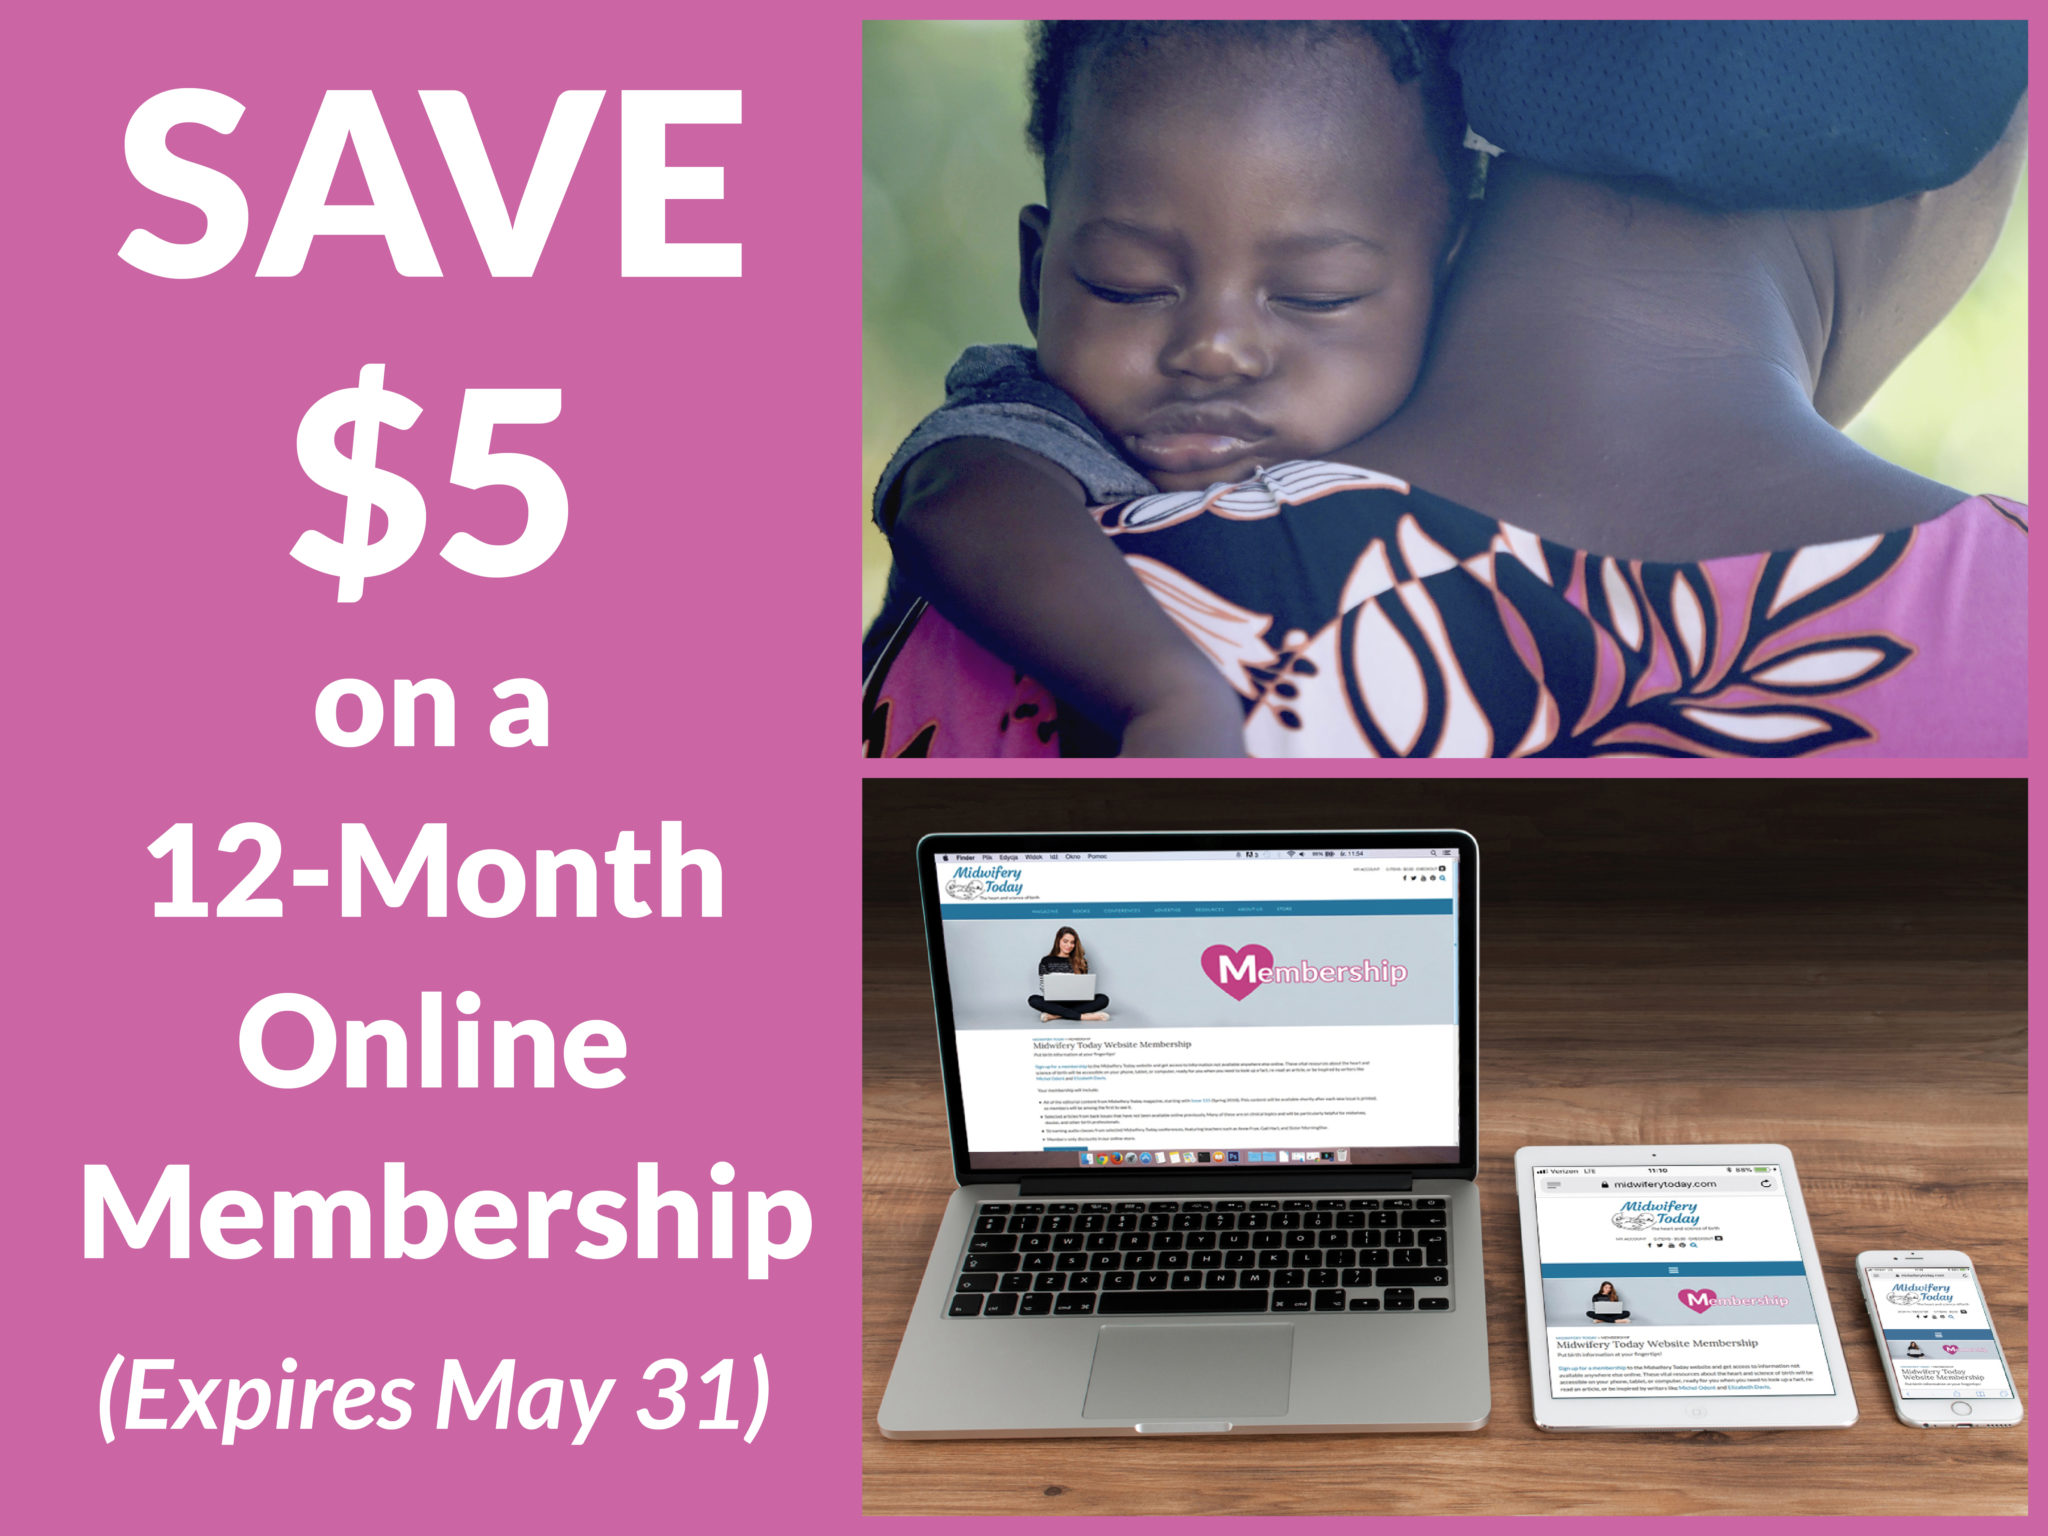 Save $5 on a 12-month Online Membership